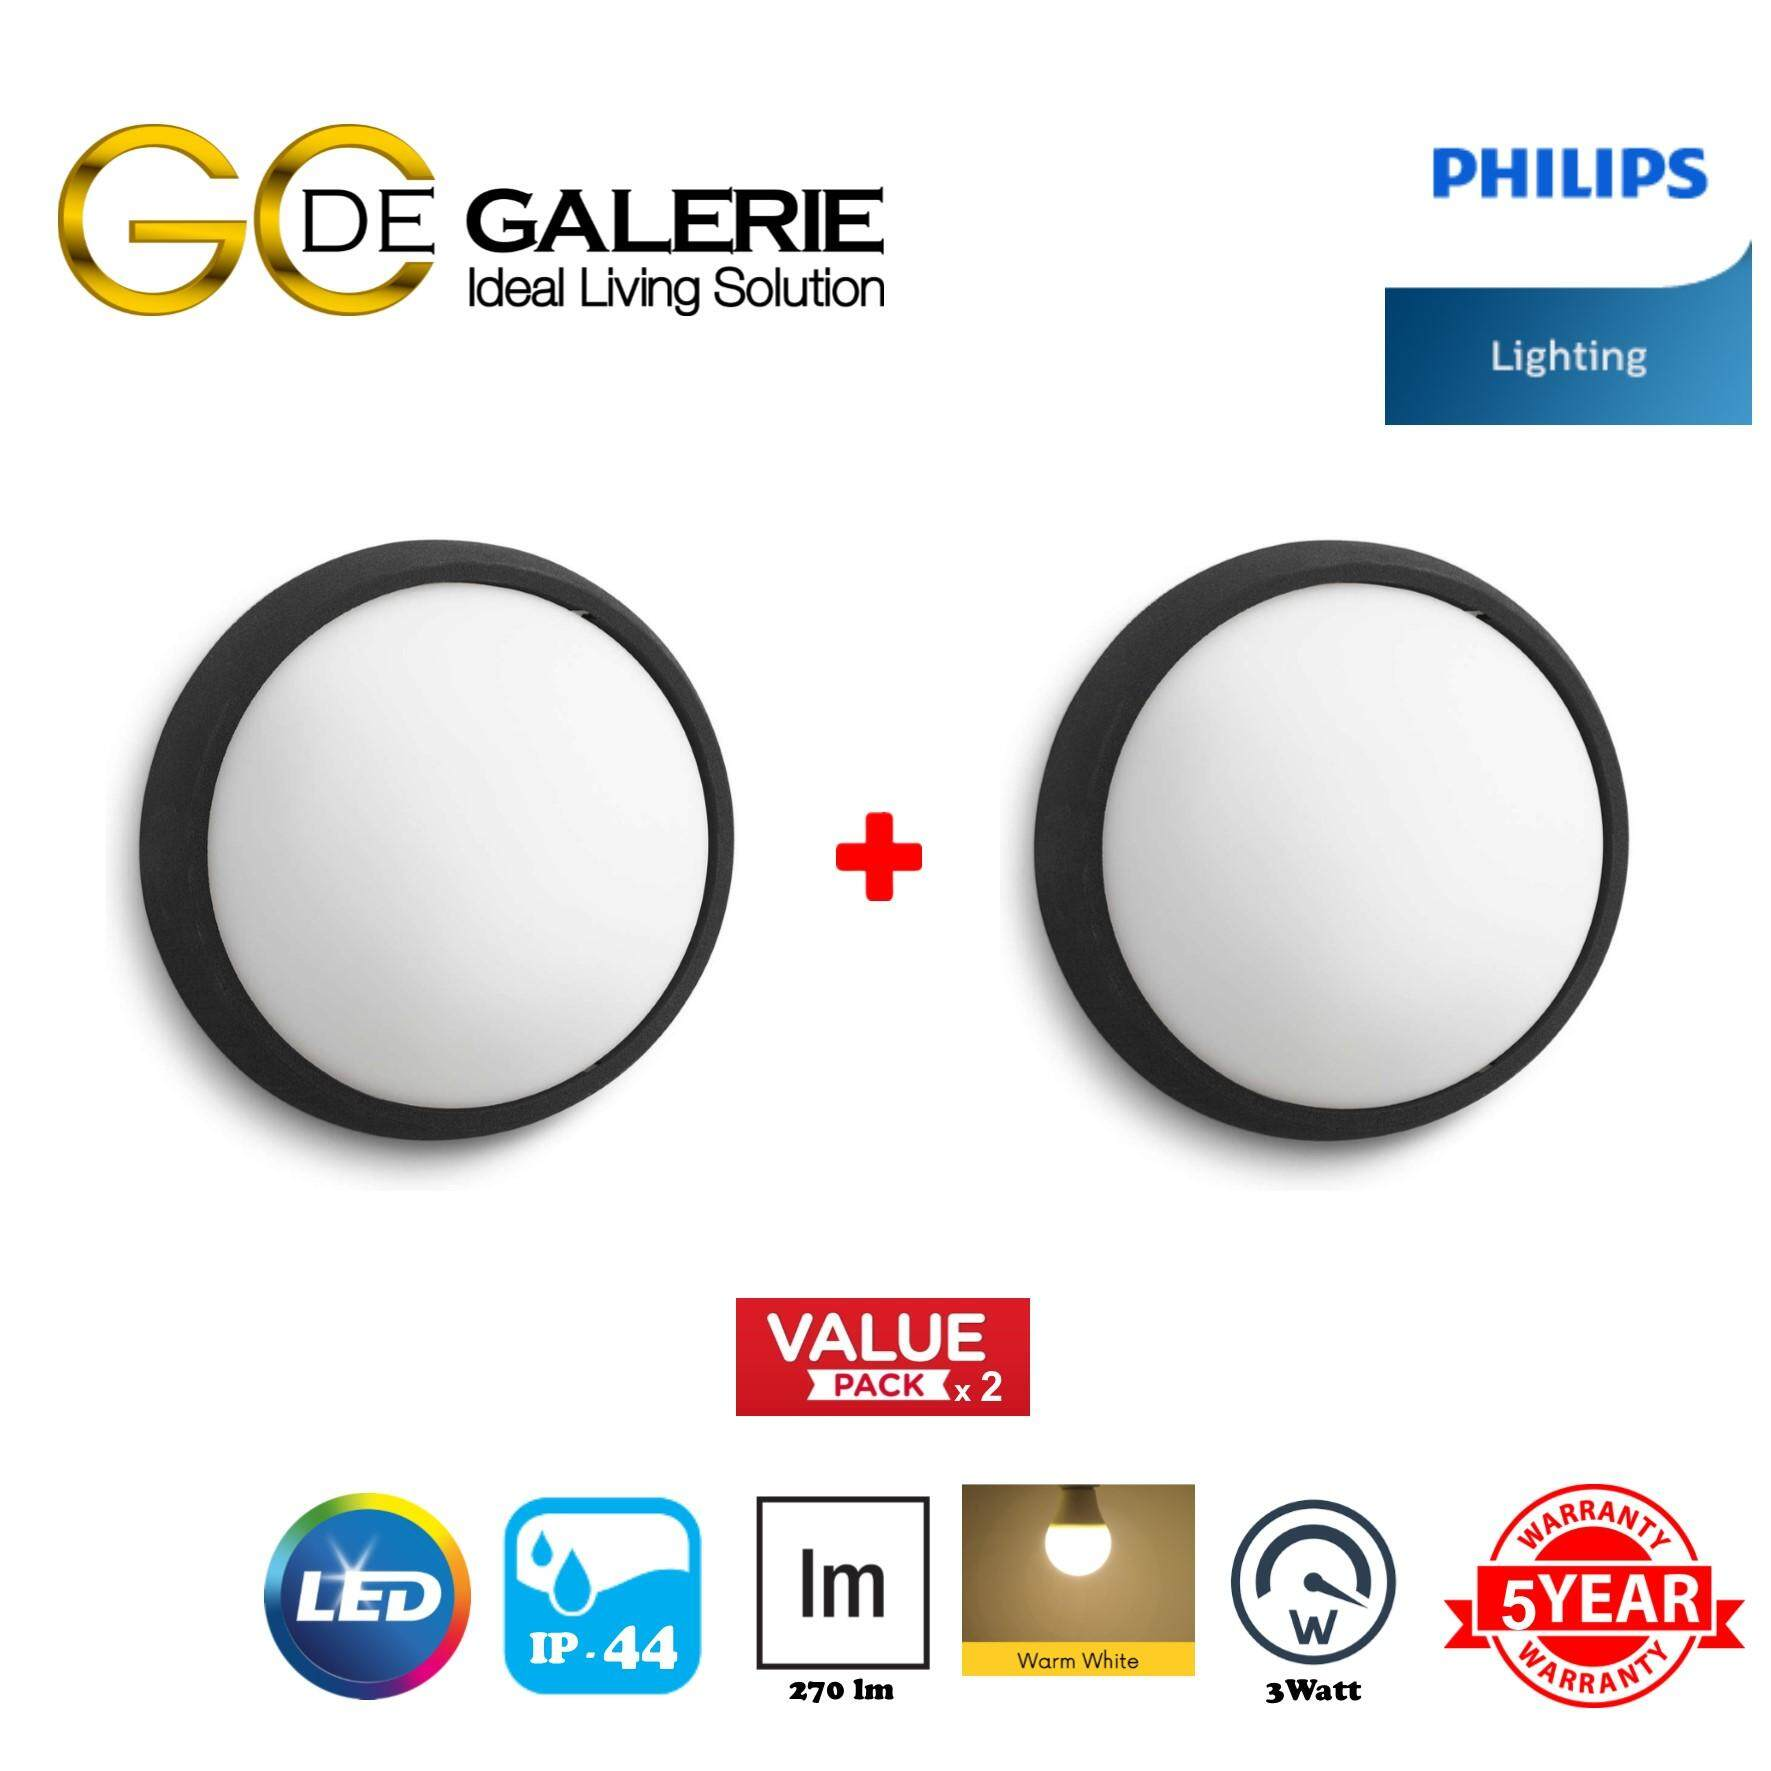 WALL LIGHT OUTDOOR LED PHILIPS 17304 EAGLE BK 1x3.5W SEL (2 PACK)